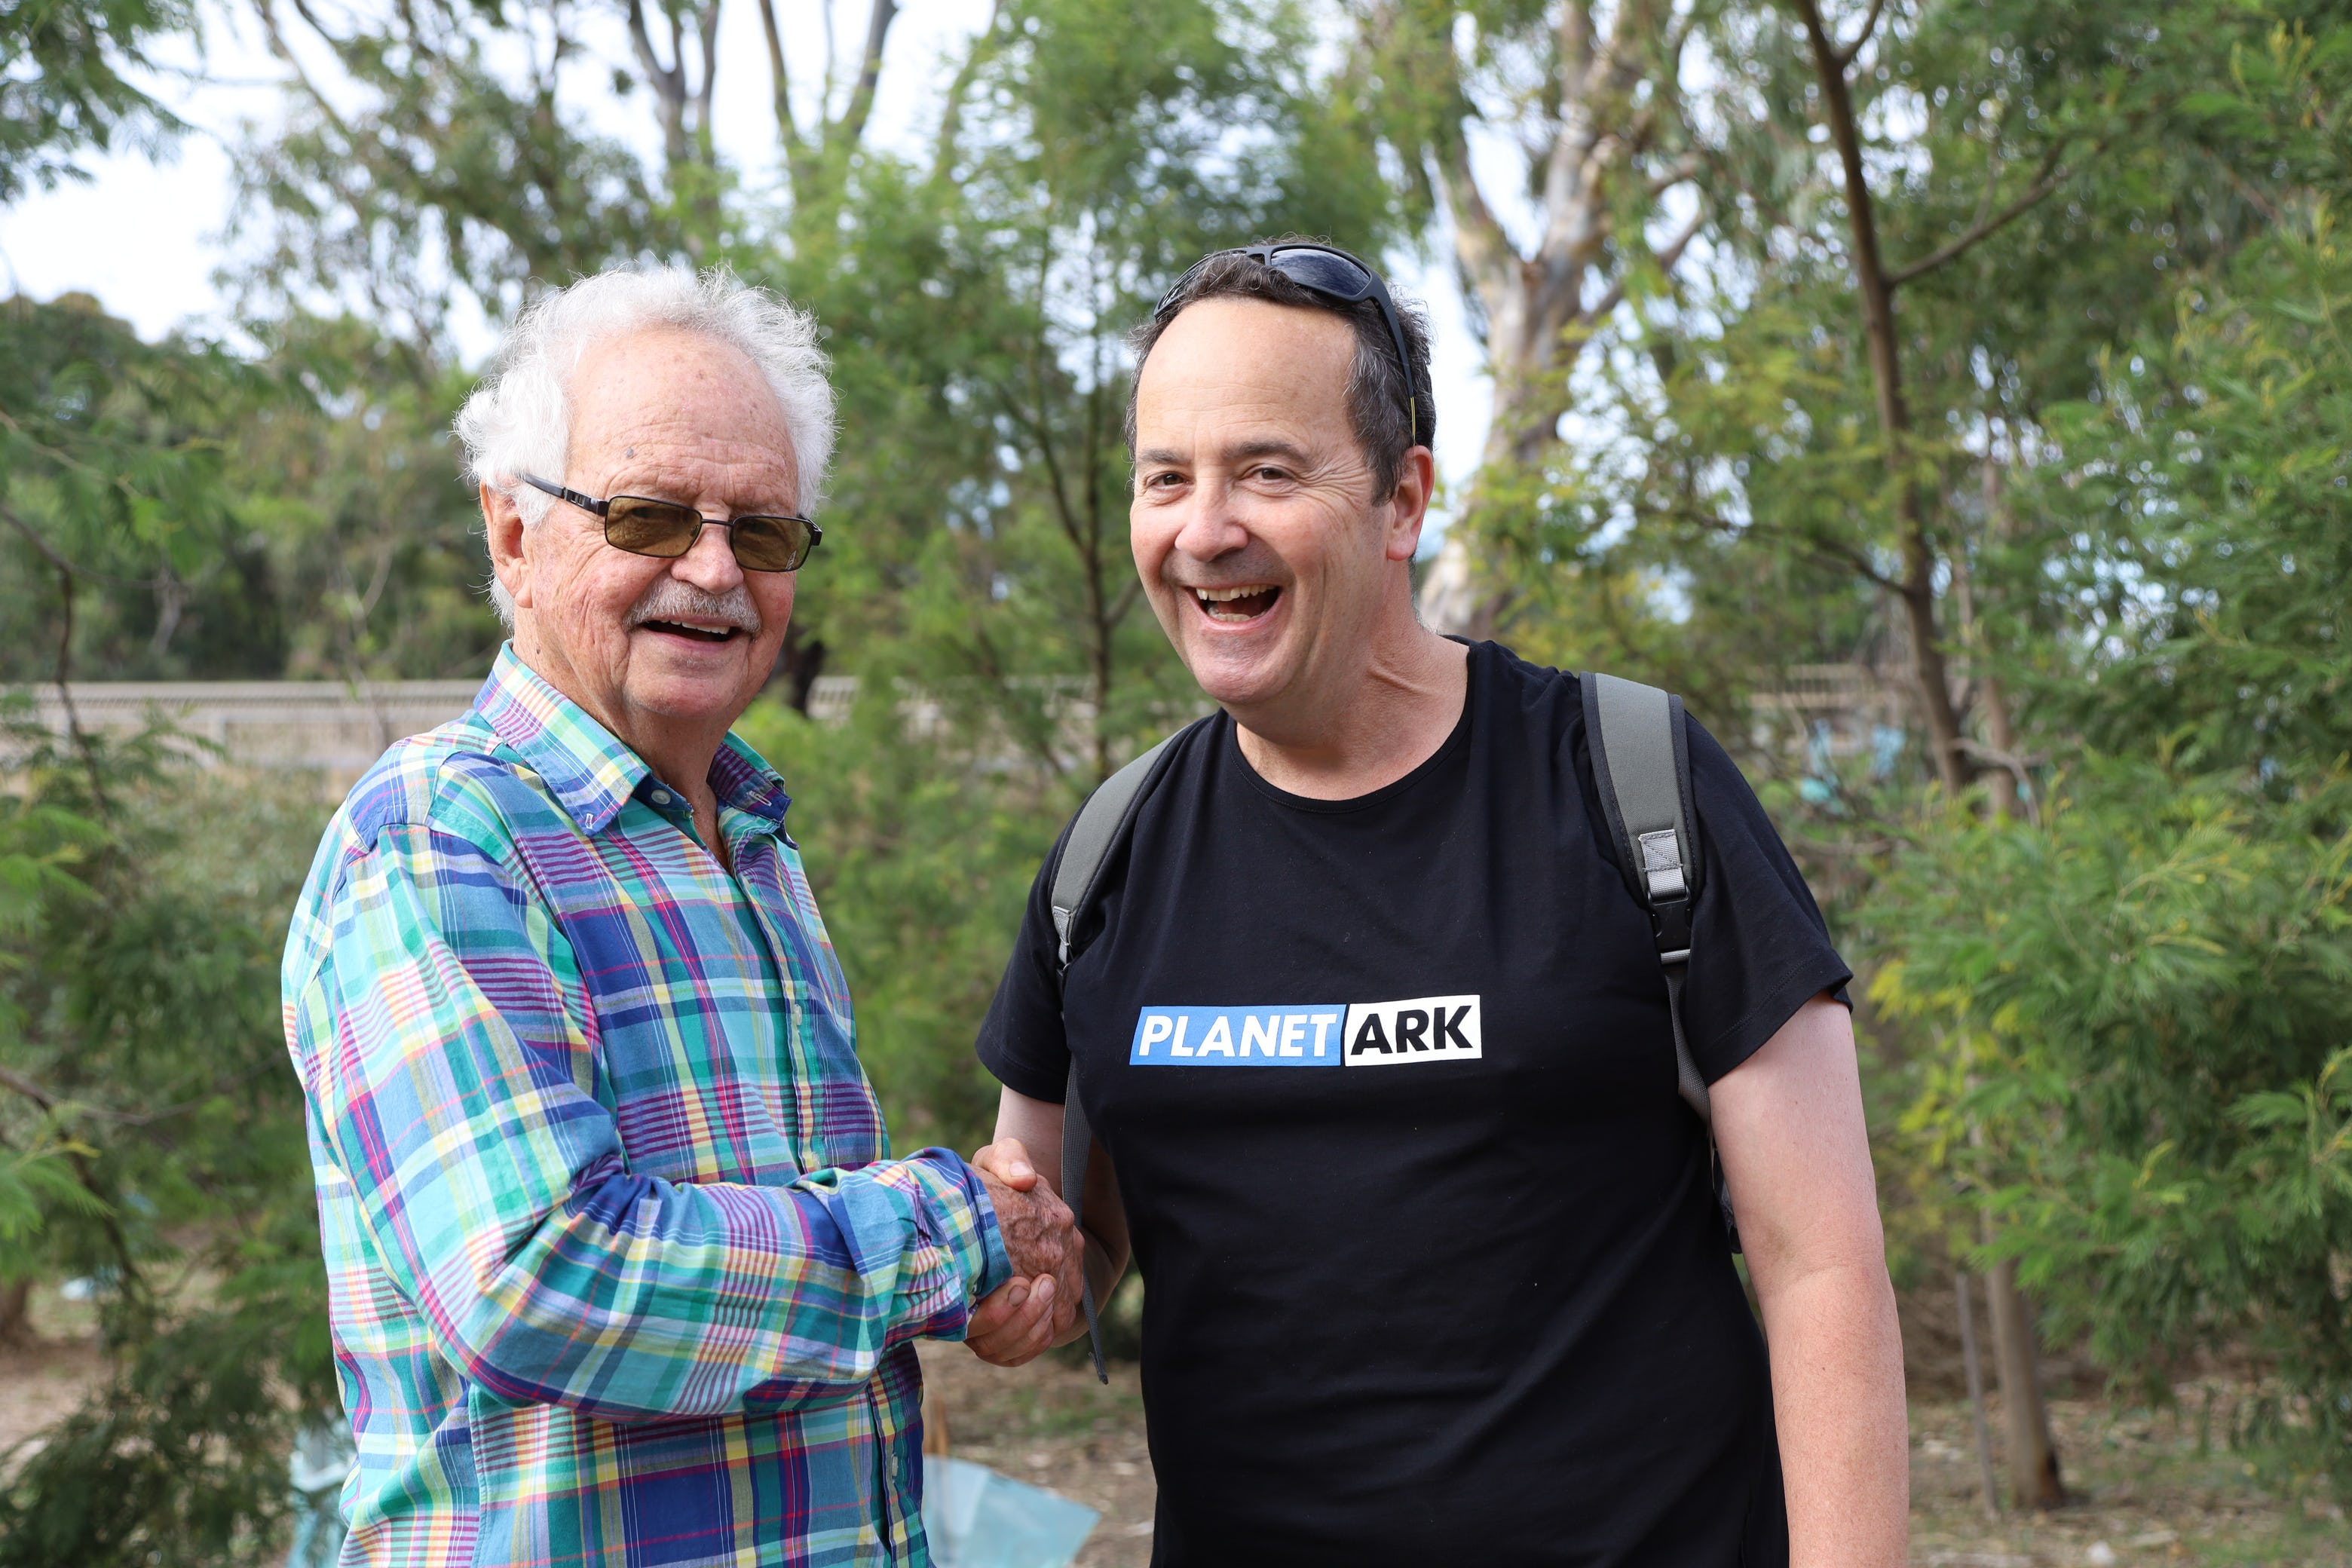 Geoff Mitchelmore with Planet Ark's Head of Research Dr Sean O'Malley at the 20th anniversary.